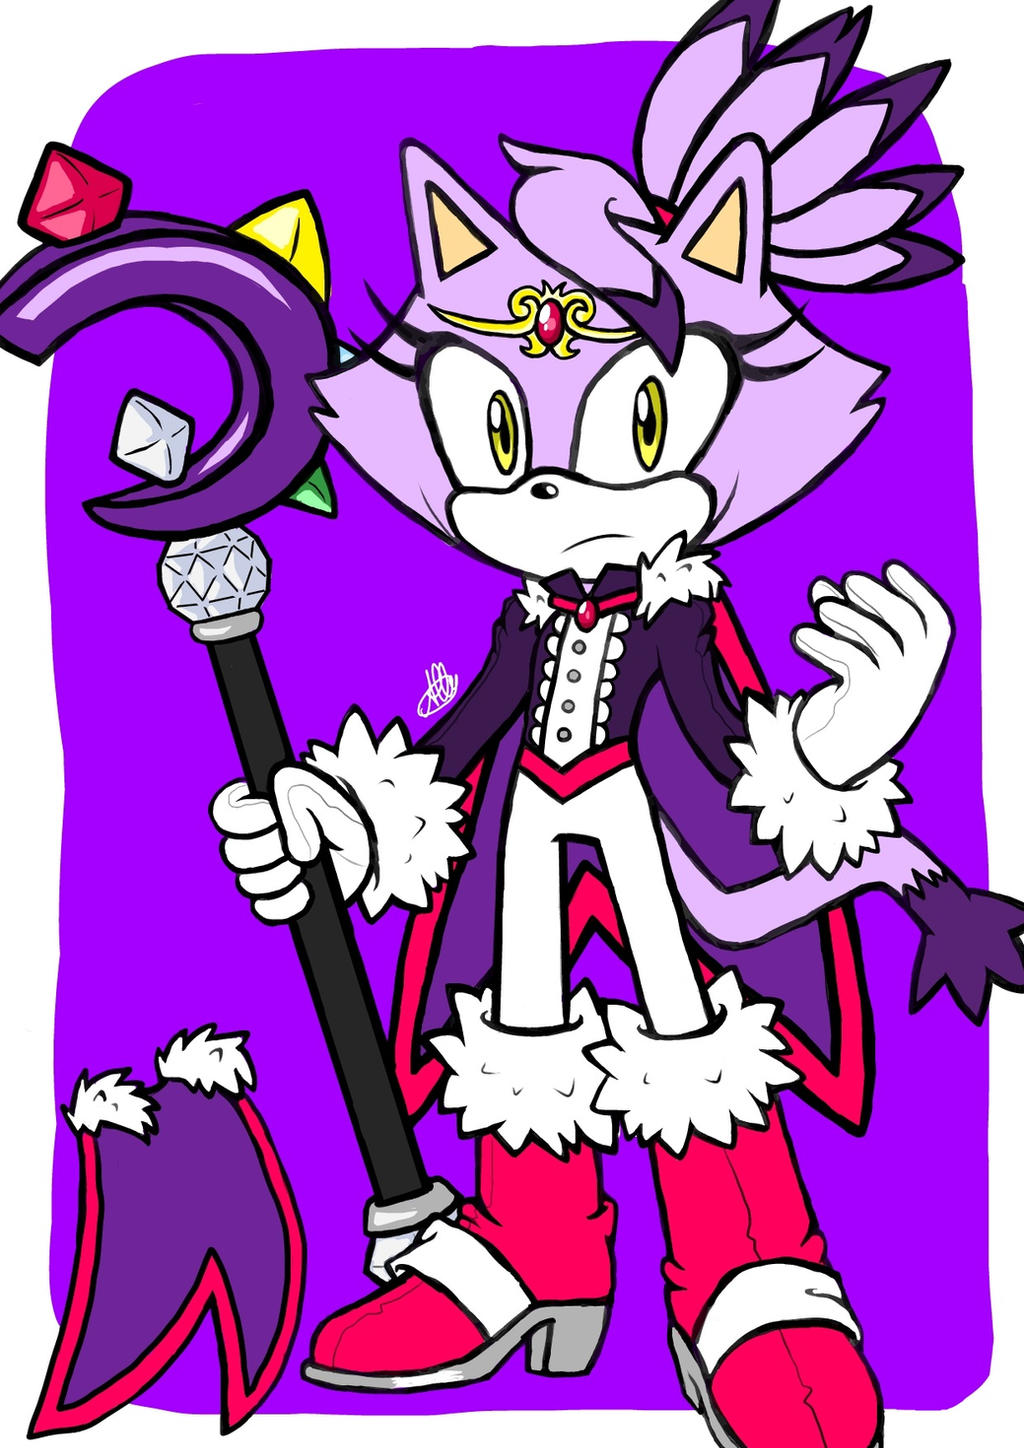 Redesign blaze the cat by mrs ally pie on deviantart for Immagini di blaze